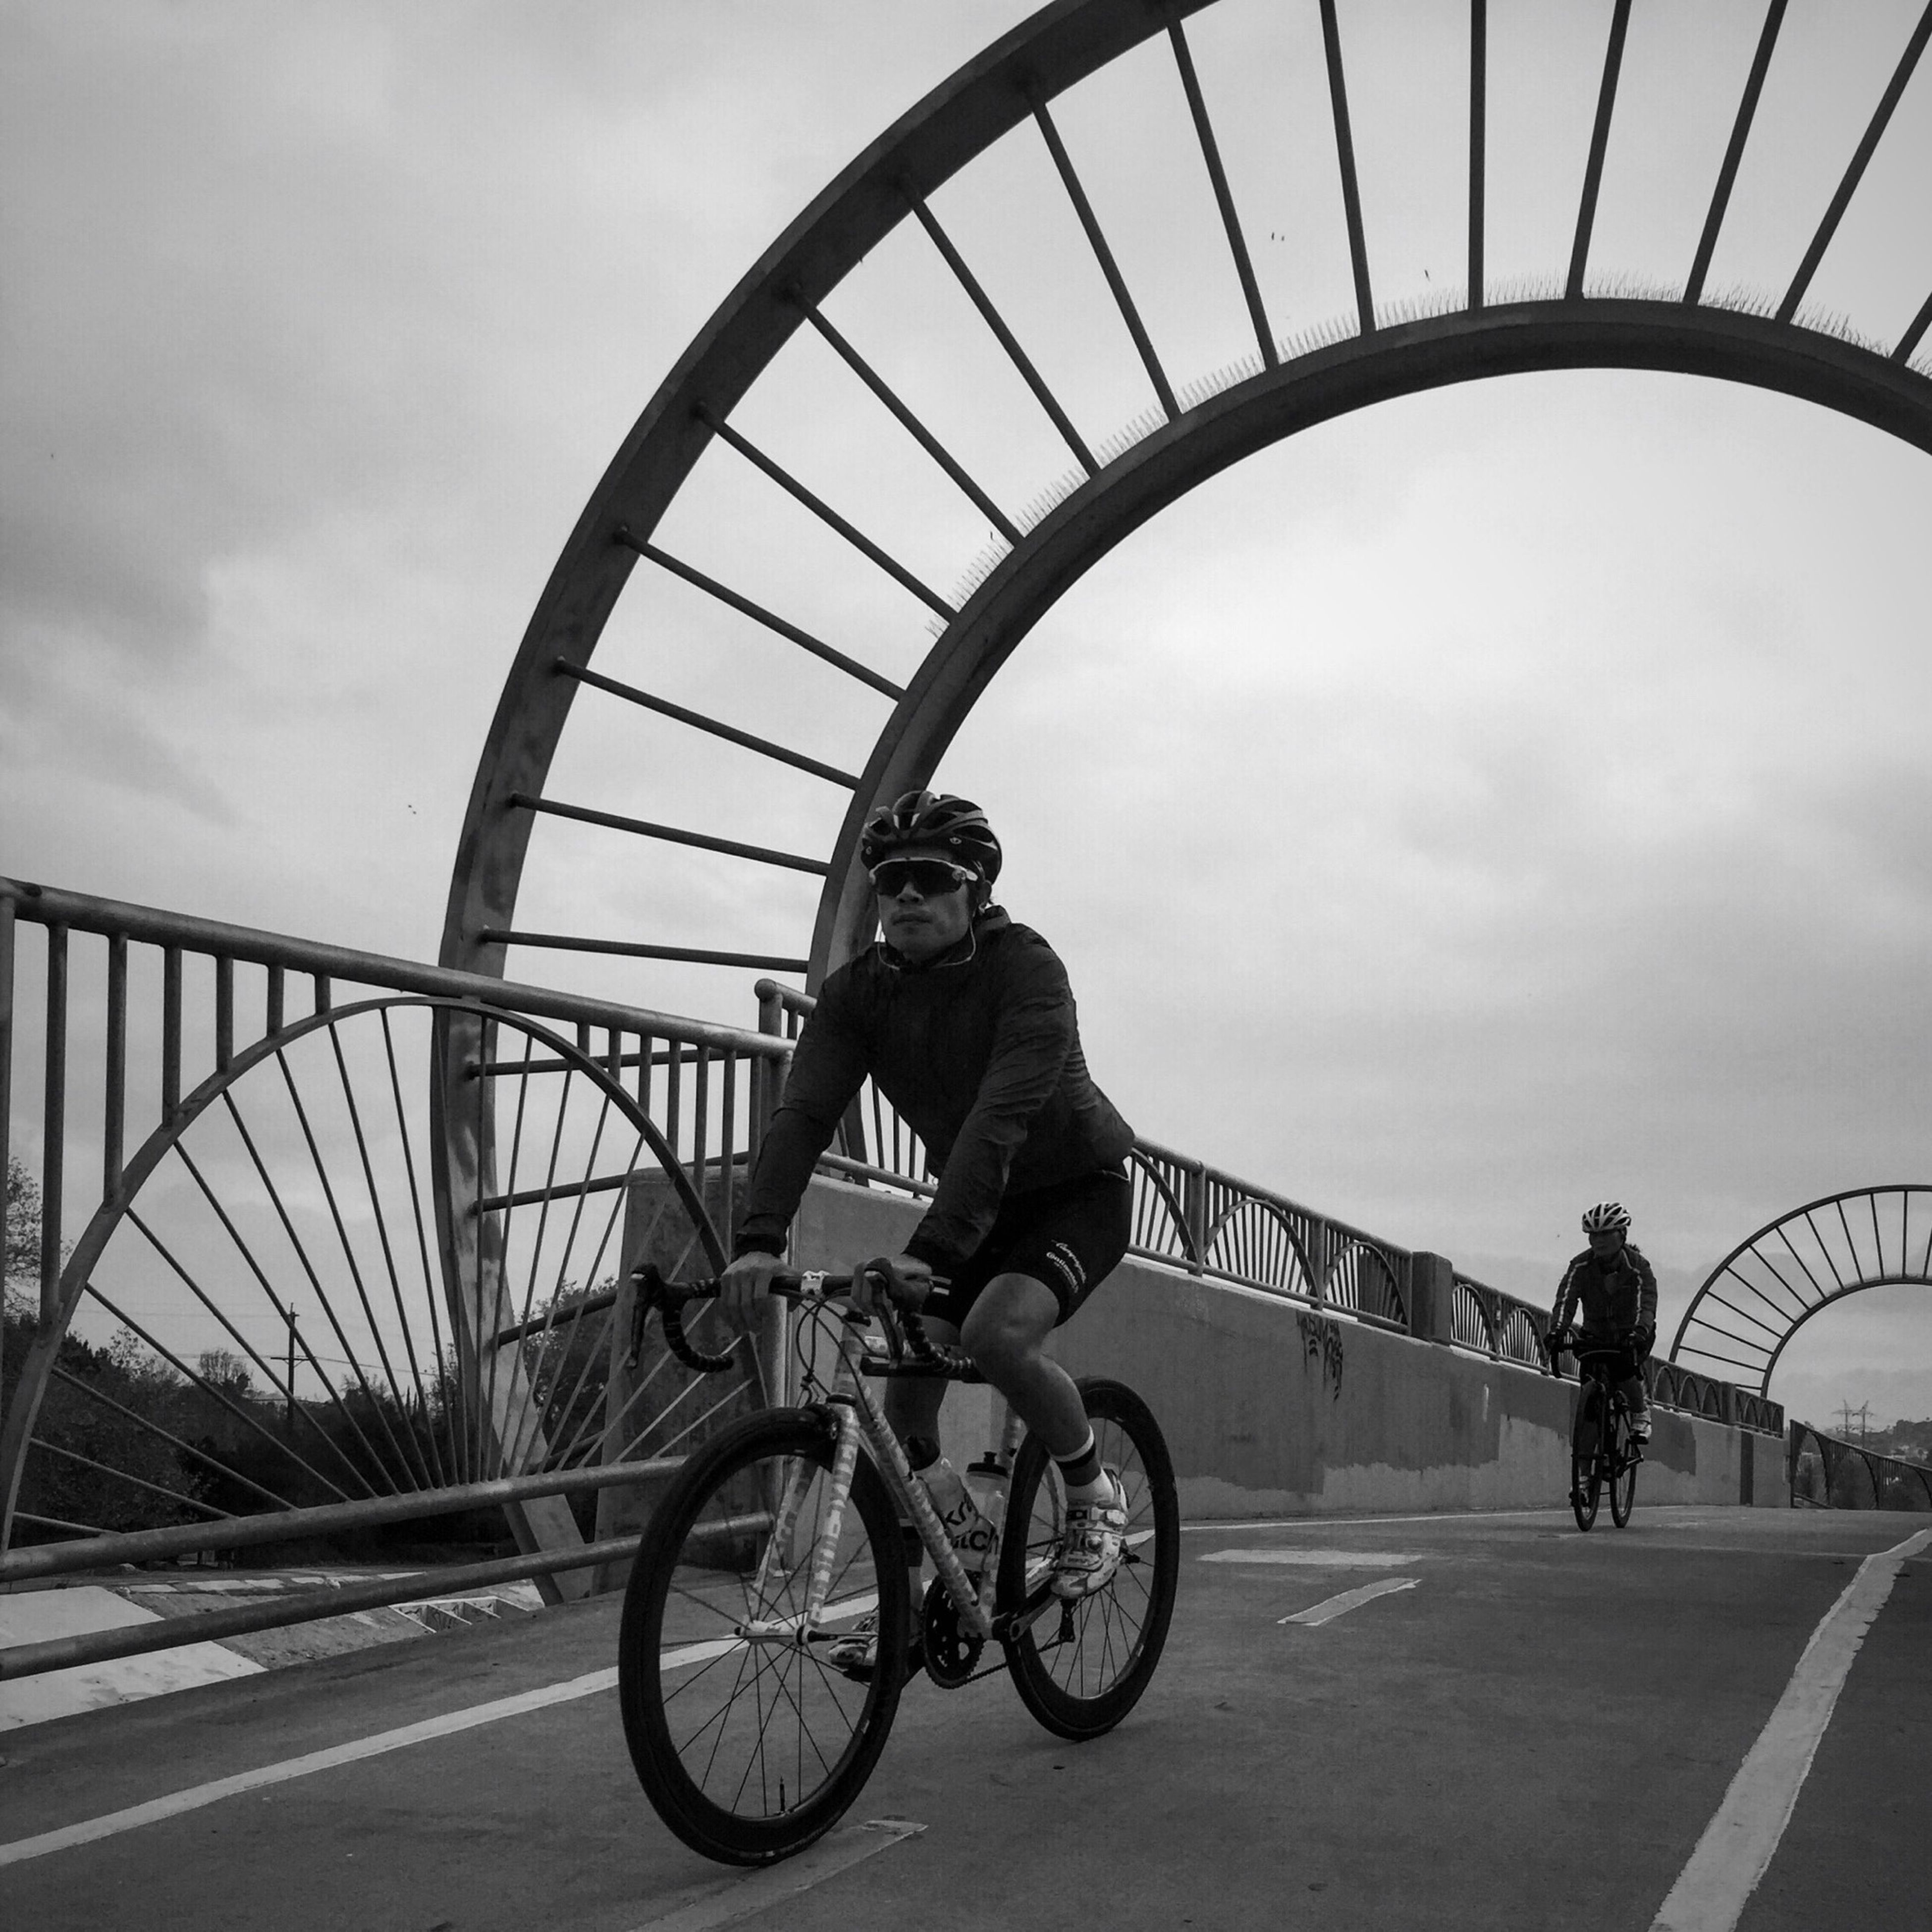 bicycle, transportation, lifestyles, leisure activity, riding, sky, mode of transport, full length, men, land vehicle, cycling, cloud - sky, architecture, built structure, travel, road, day, standing